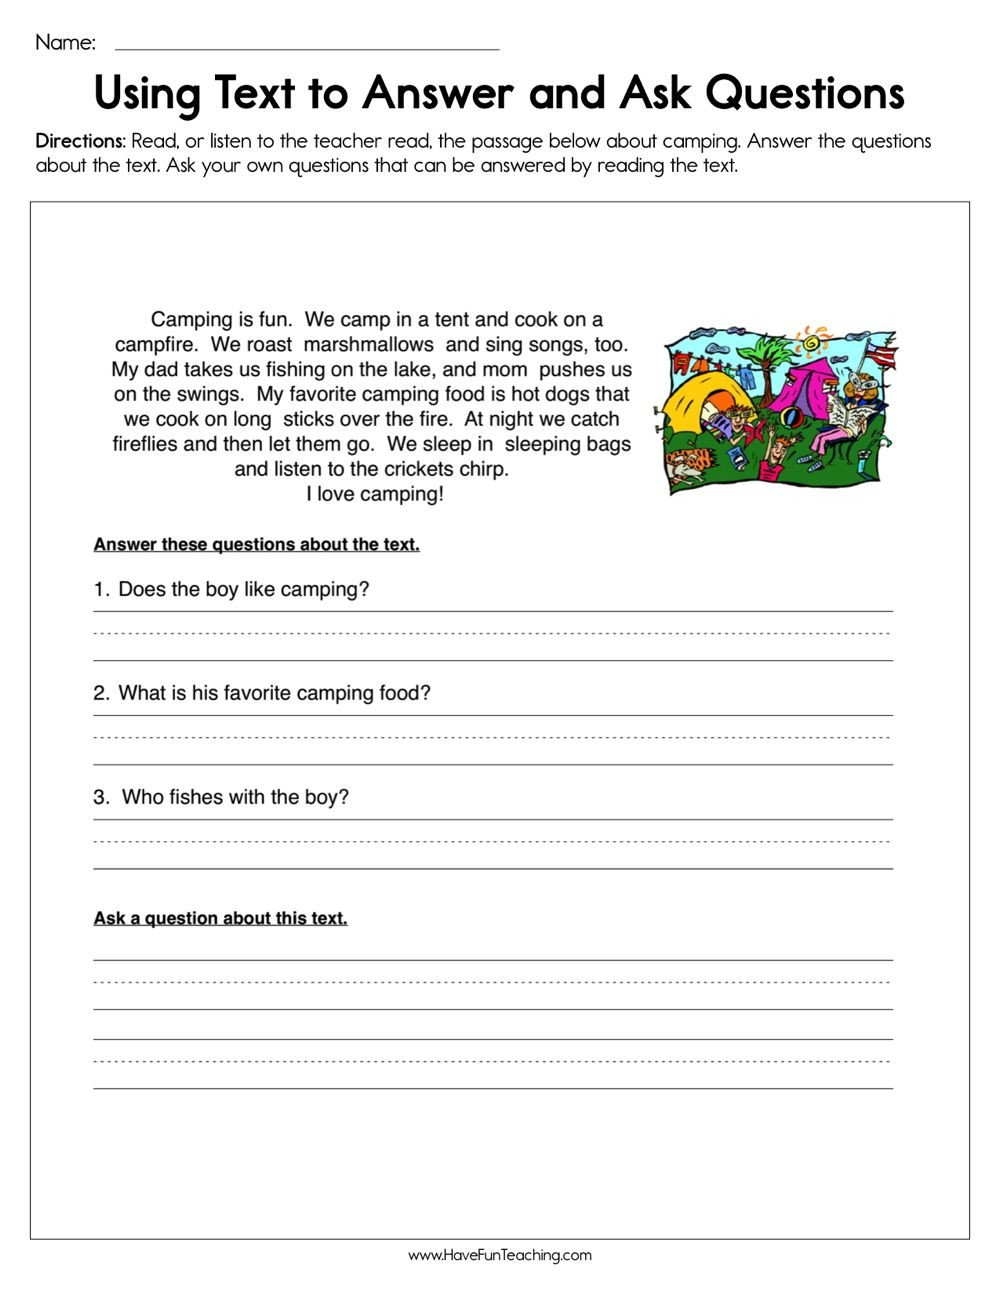 Dogs Decoded Worksheet Using Text to Answer and ask Questions Worksheet